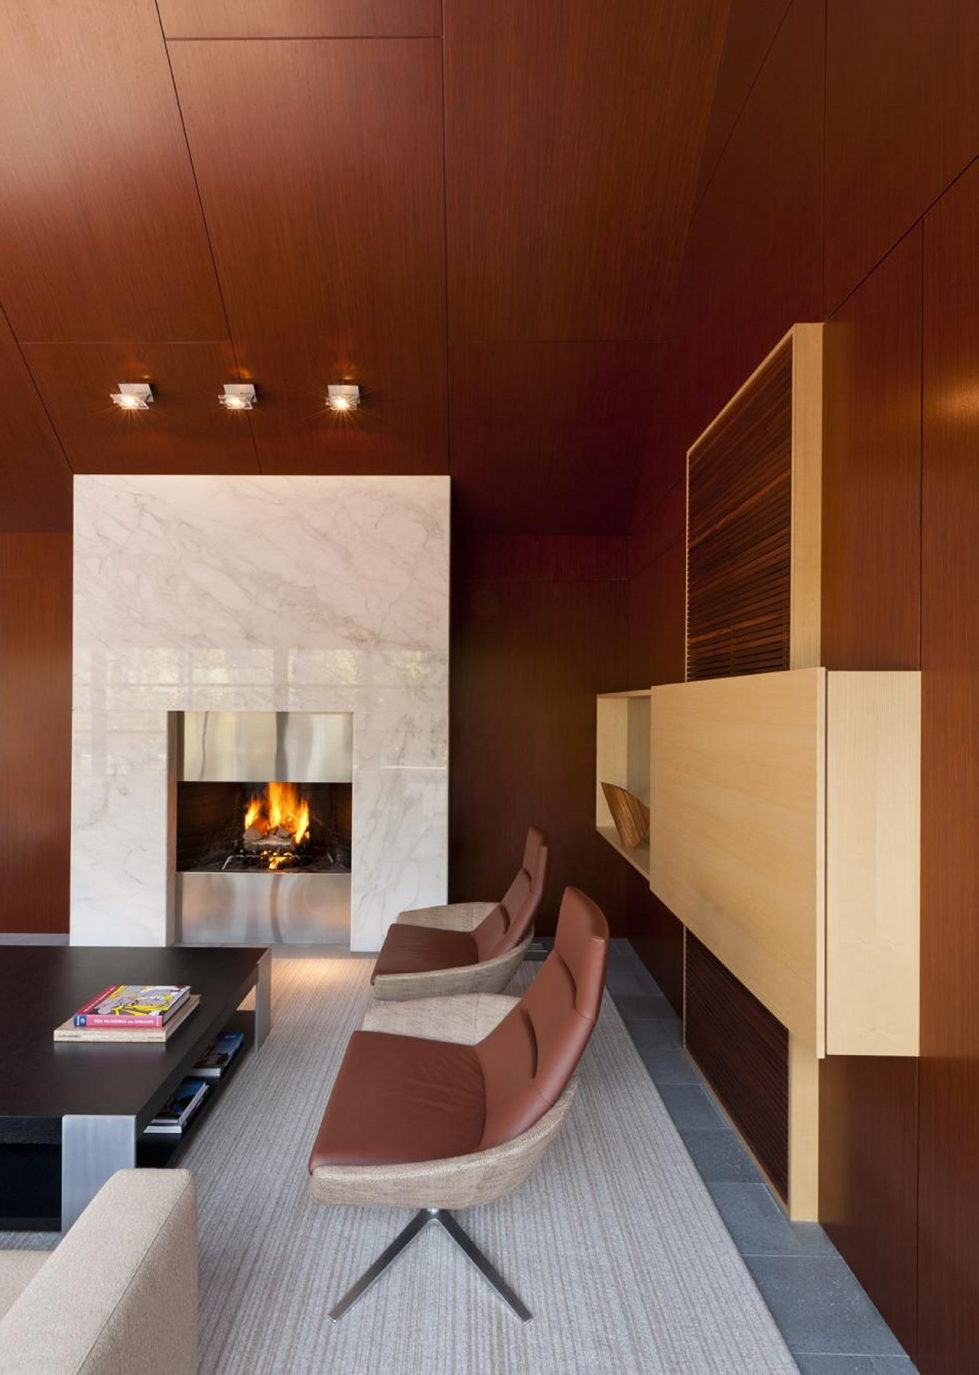 Renovation Of The Historical House From Robert M. Gurney Architect Studio 11